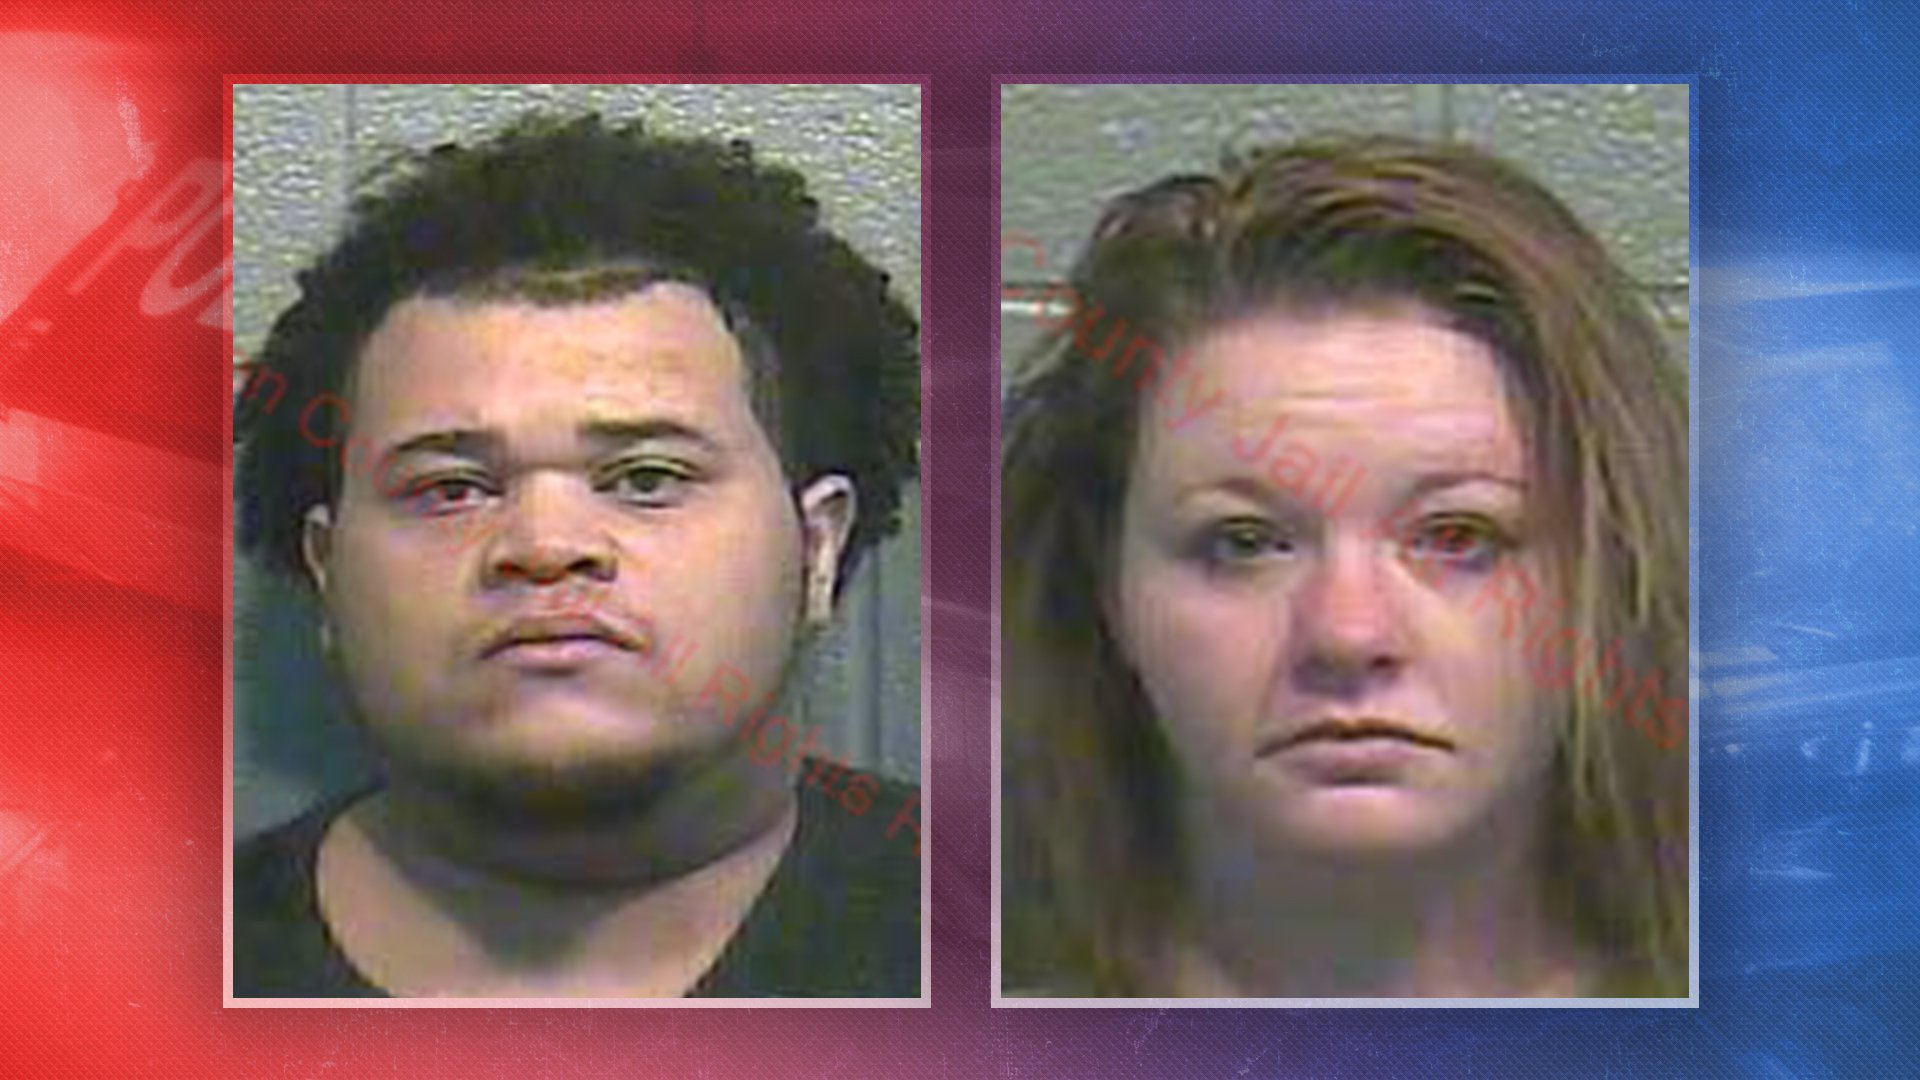 glasgow couple arrested on drug charges after theft